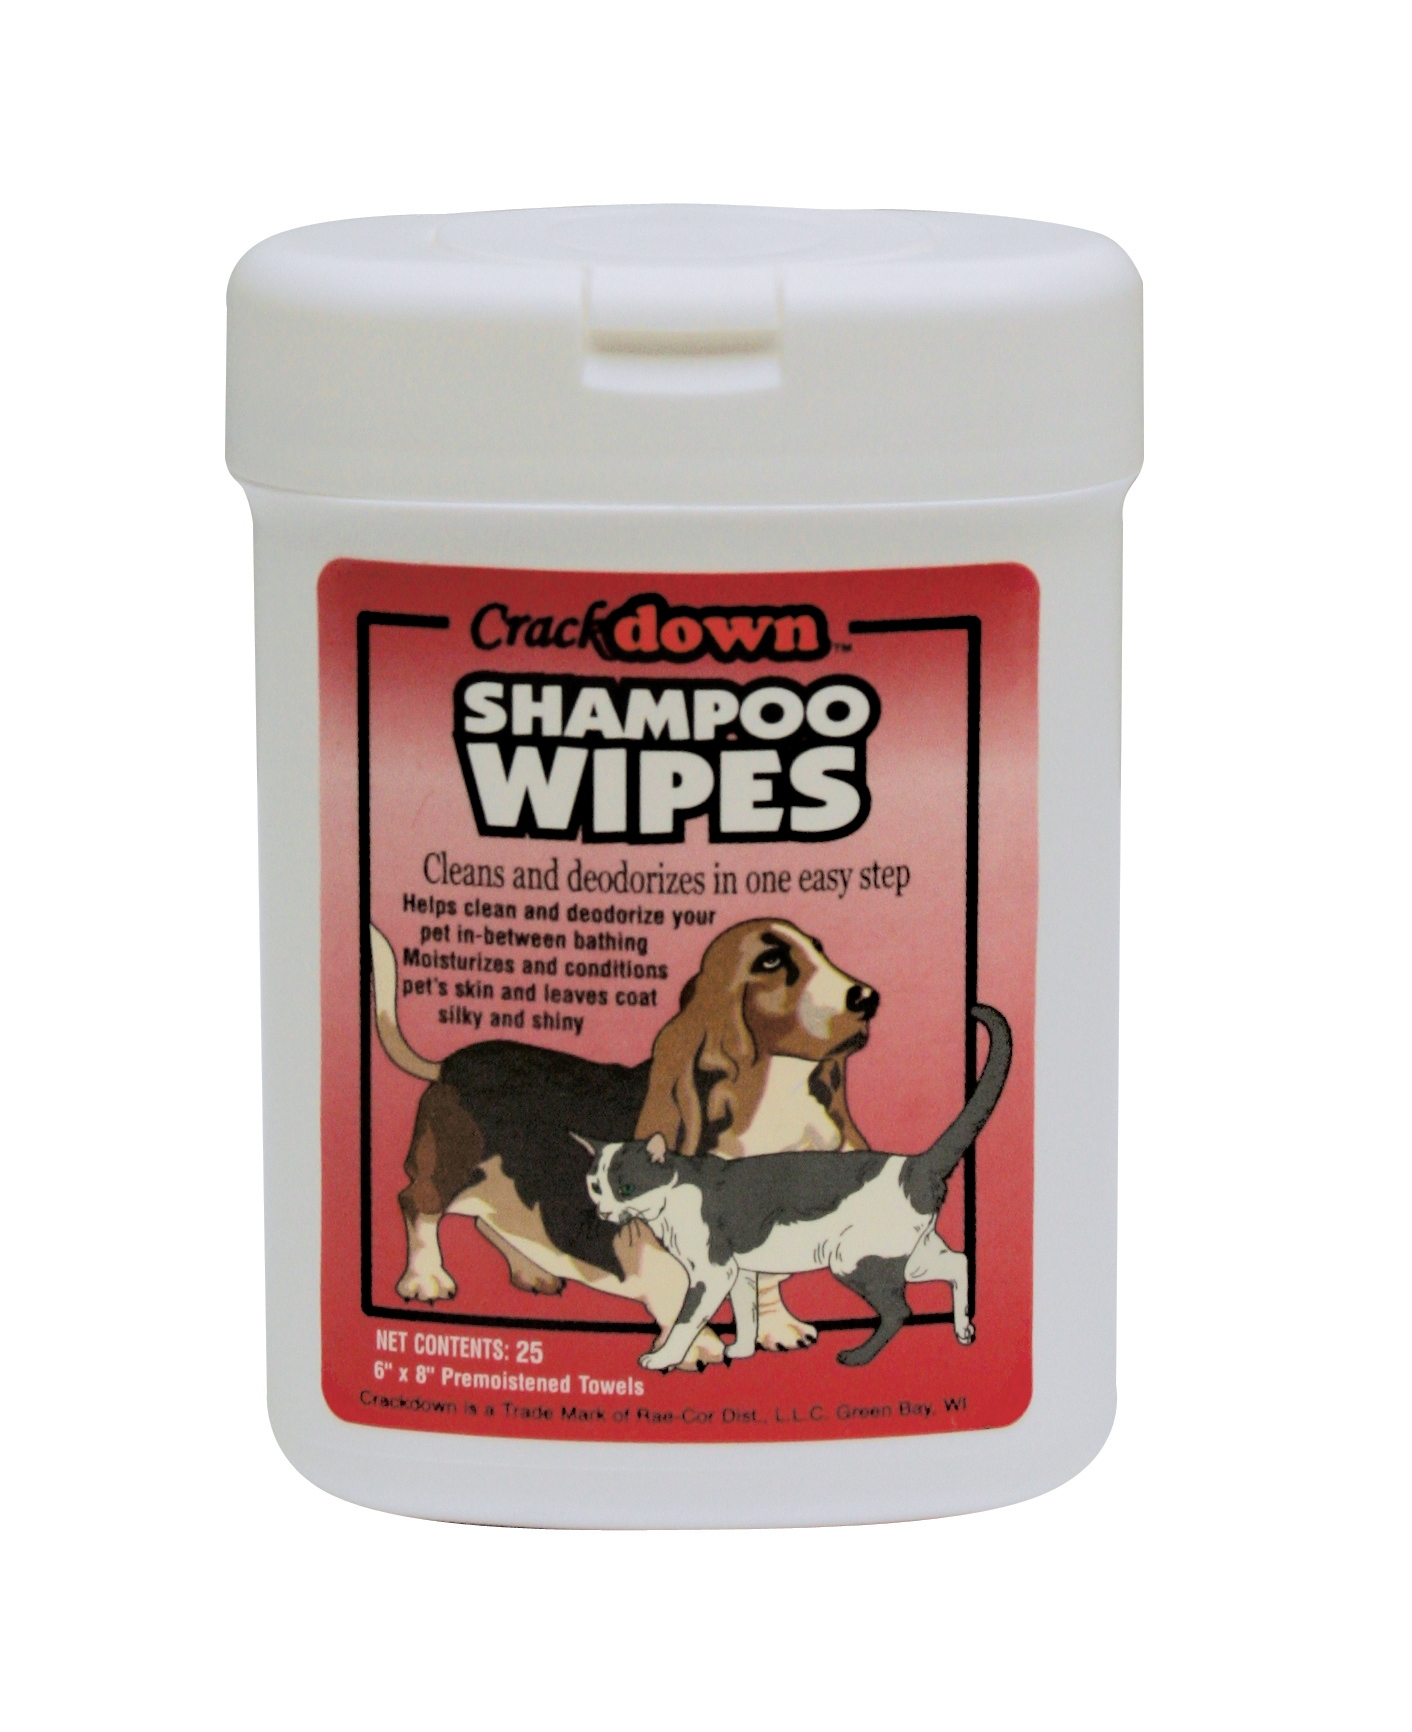 SHAMPOO WIPES - 25 COUNT CANISTER